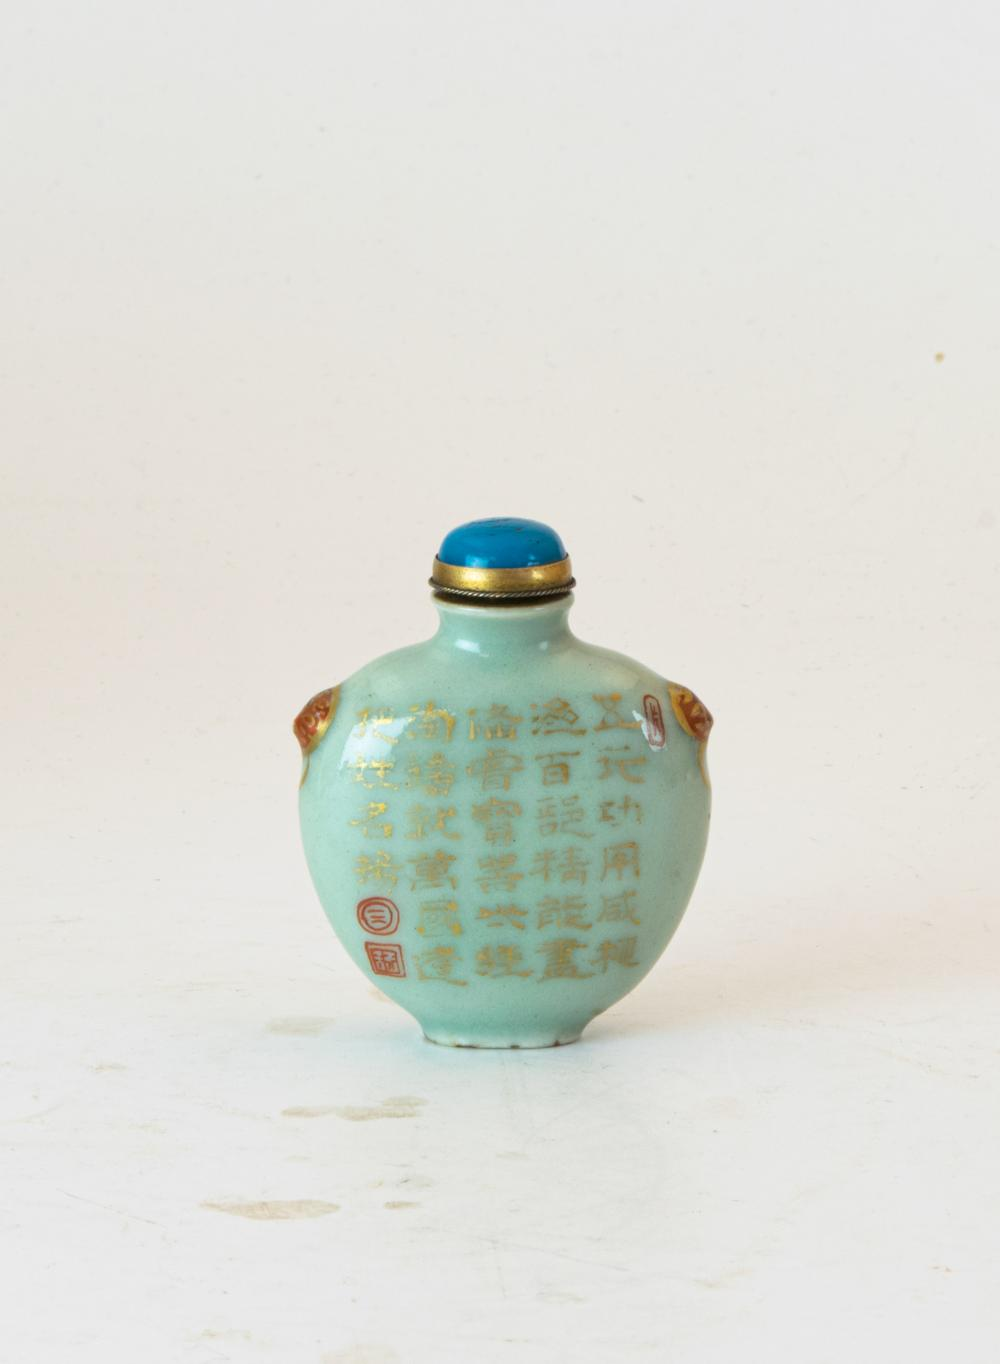 Lot 639: CHINESE SNUFF BOTTLE WITH IMPERIAL POEM, QIANLONG